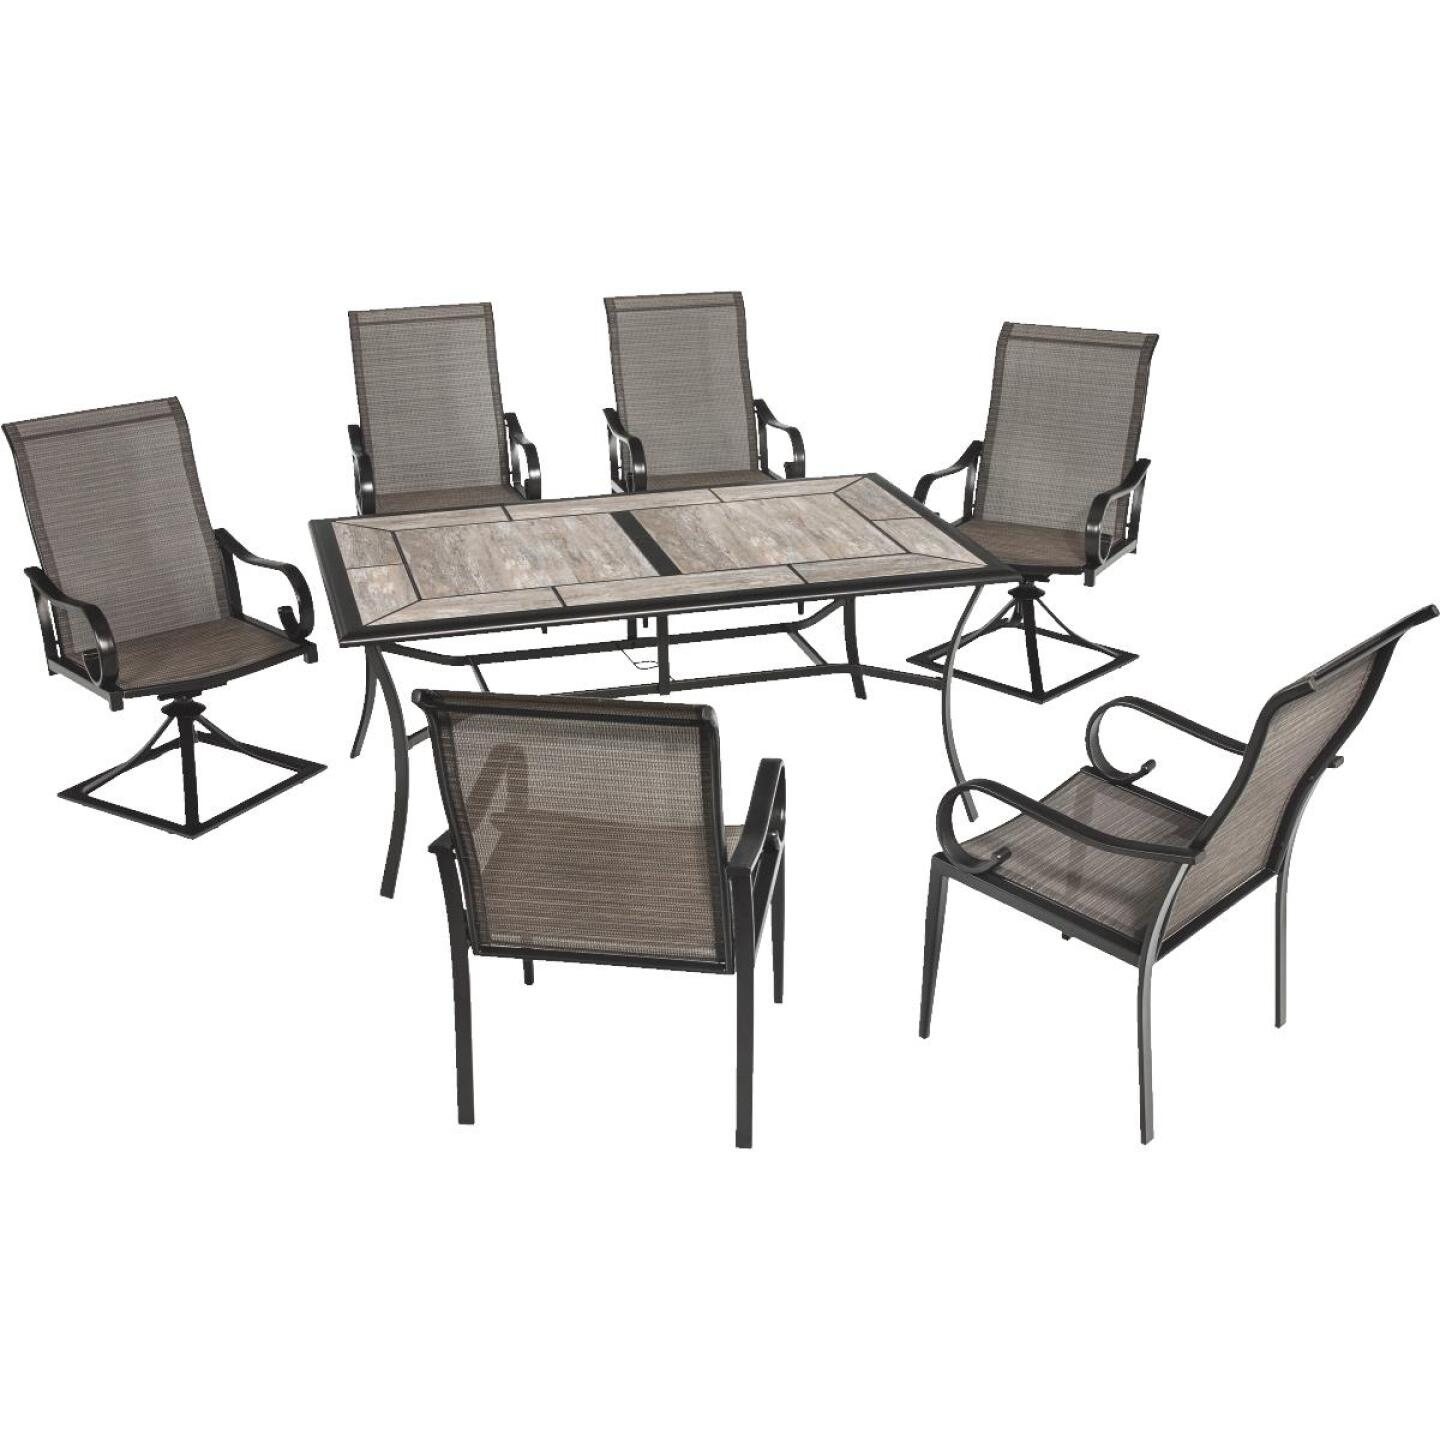 Outdoor Expressions Berkshire 7-Piece Dining Set Image 356